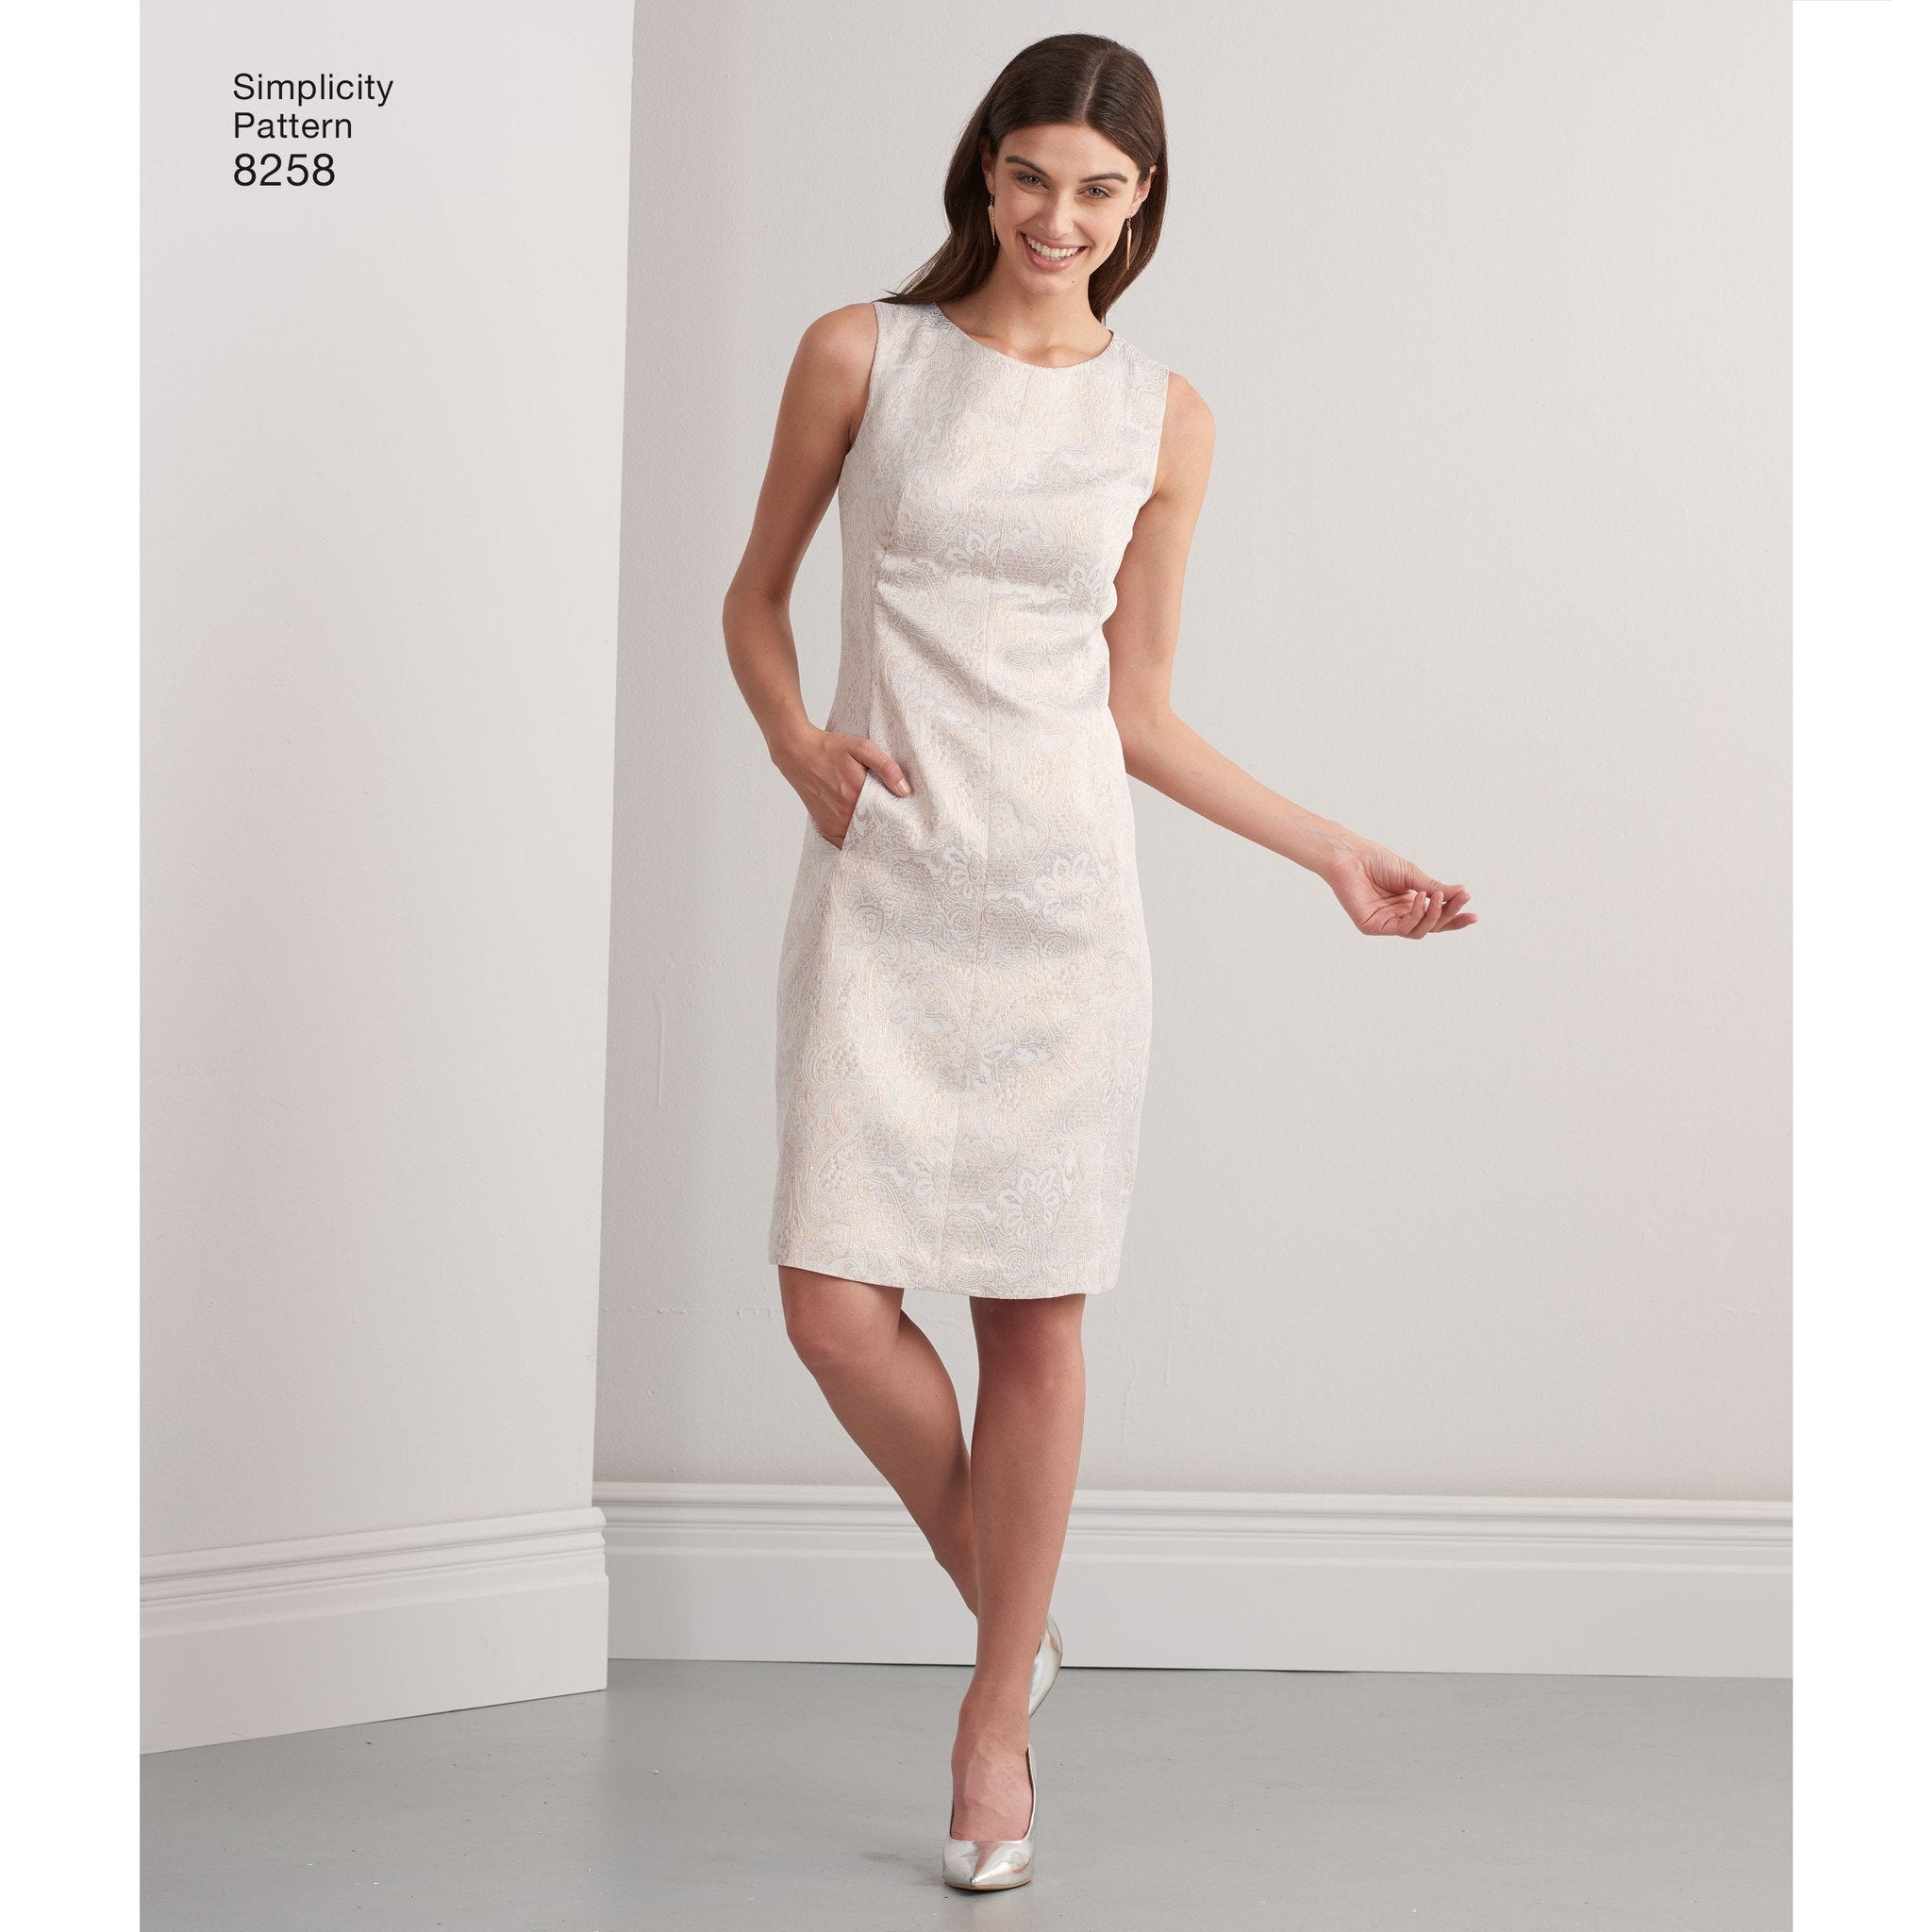 S8258 Misses\' and Plus Size Amazing Fit Dress Simplicity Pattern ...